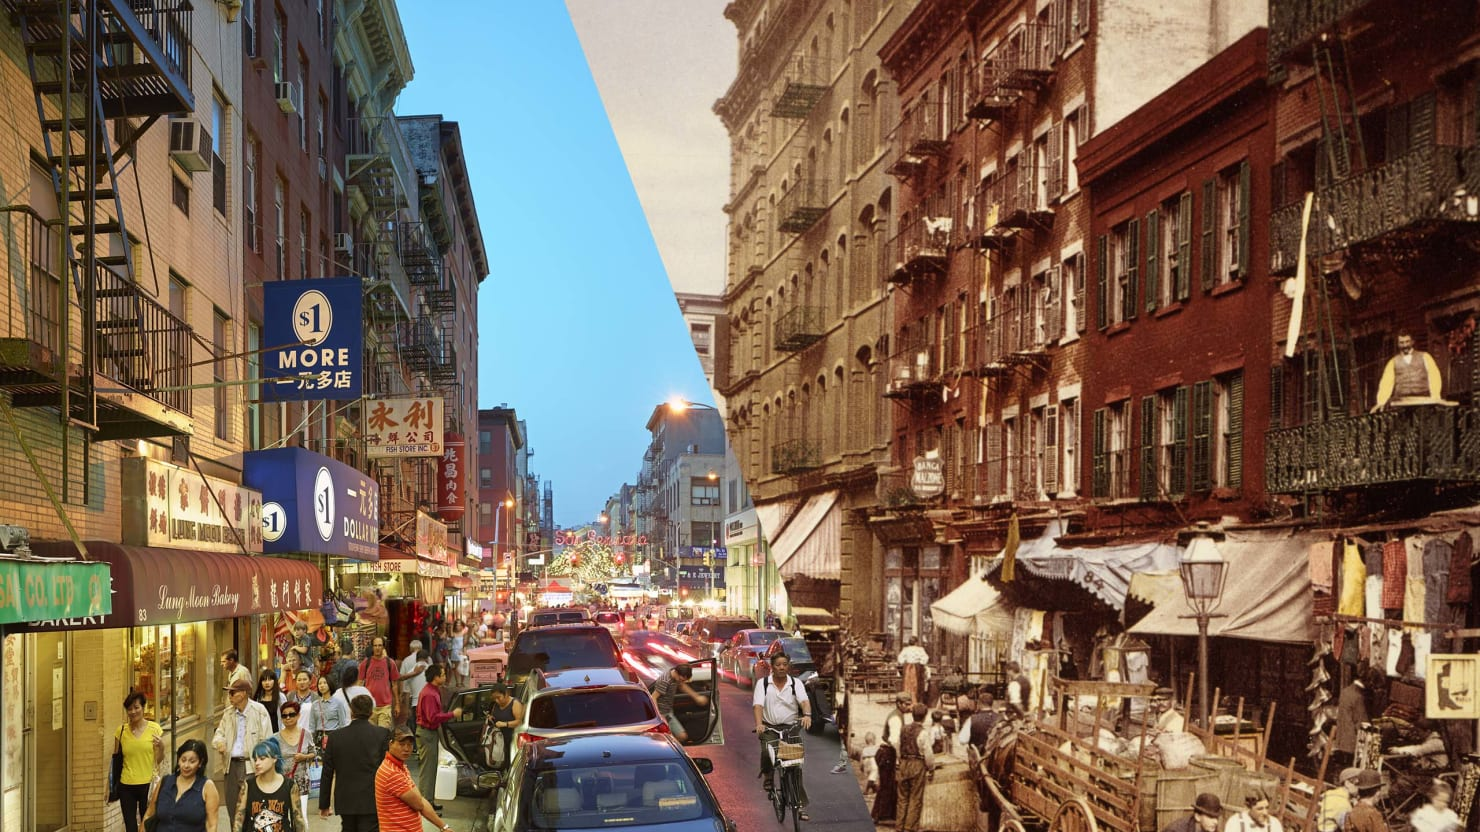 D Printing Exhibition New York : This exhibition reveals the secret of new york s enduring